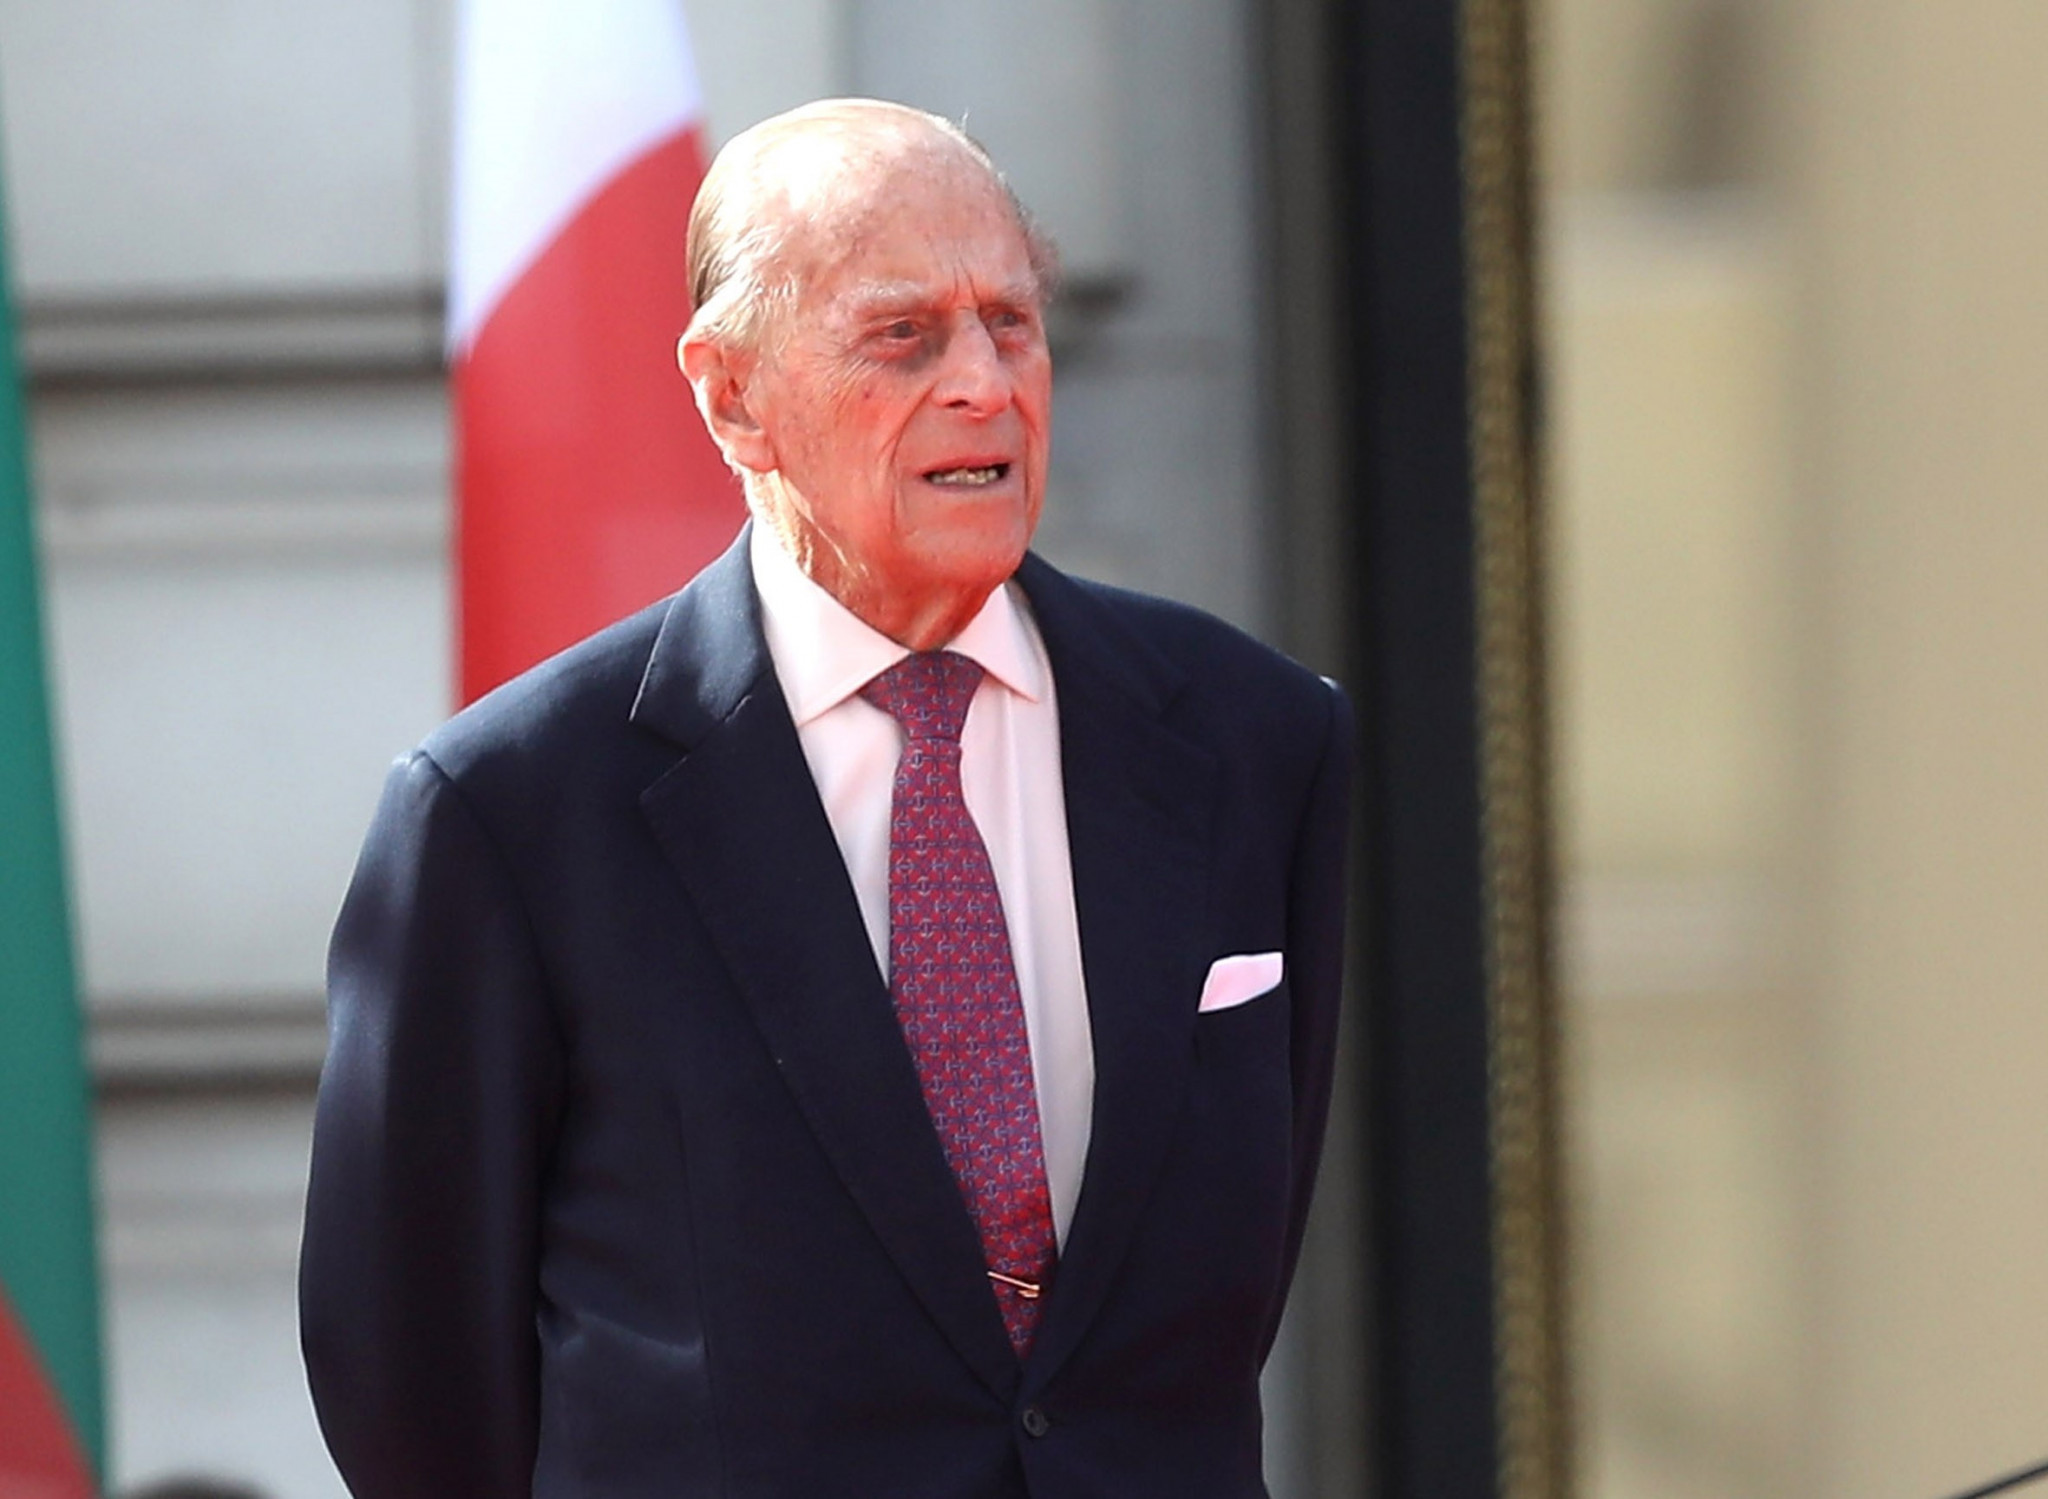 Commonwealth Games Federation pays tribute to former President Prince Philip following death